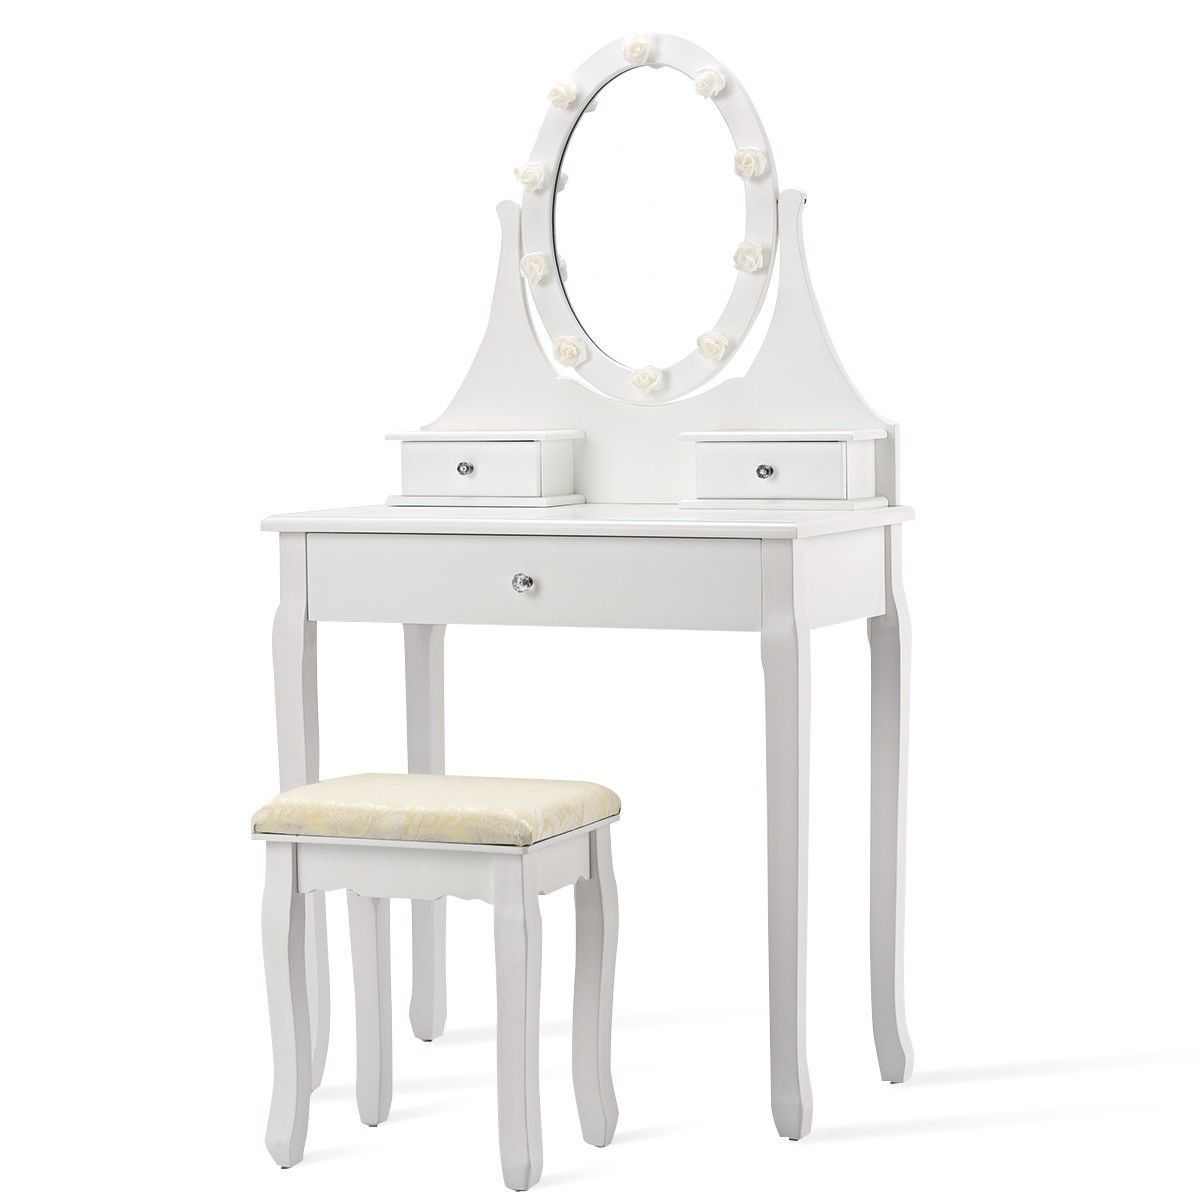 3 Drawers Lighted Mirror Vanity Dressing Table Stool Set Dressing Table With Stool Drawer Lights Dressing Table Set